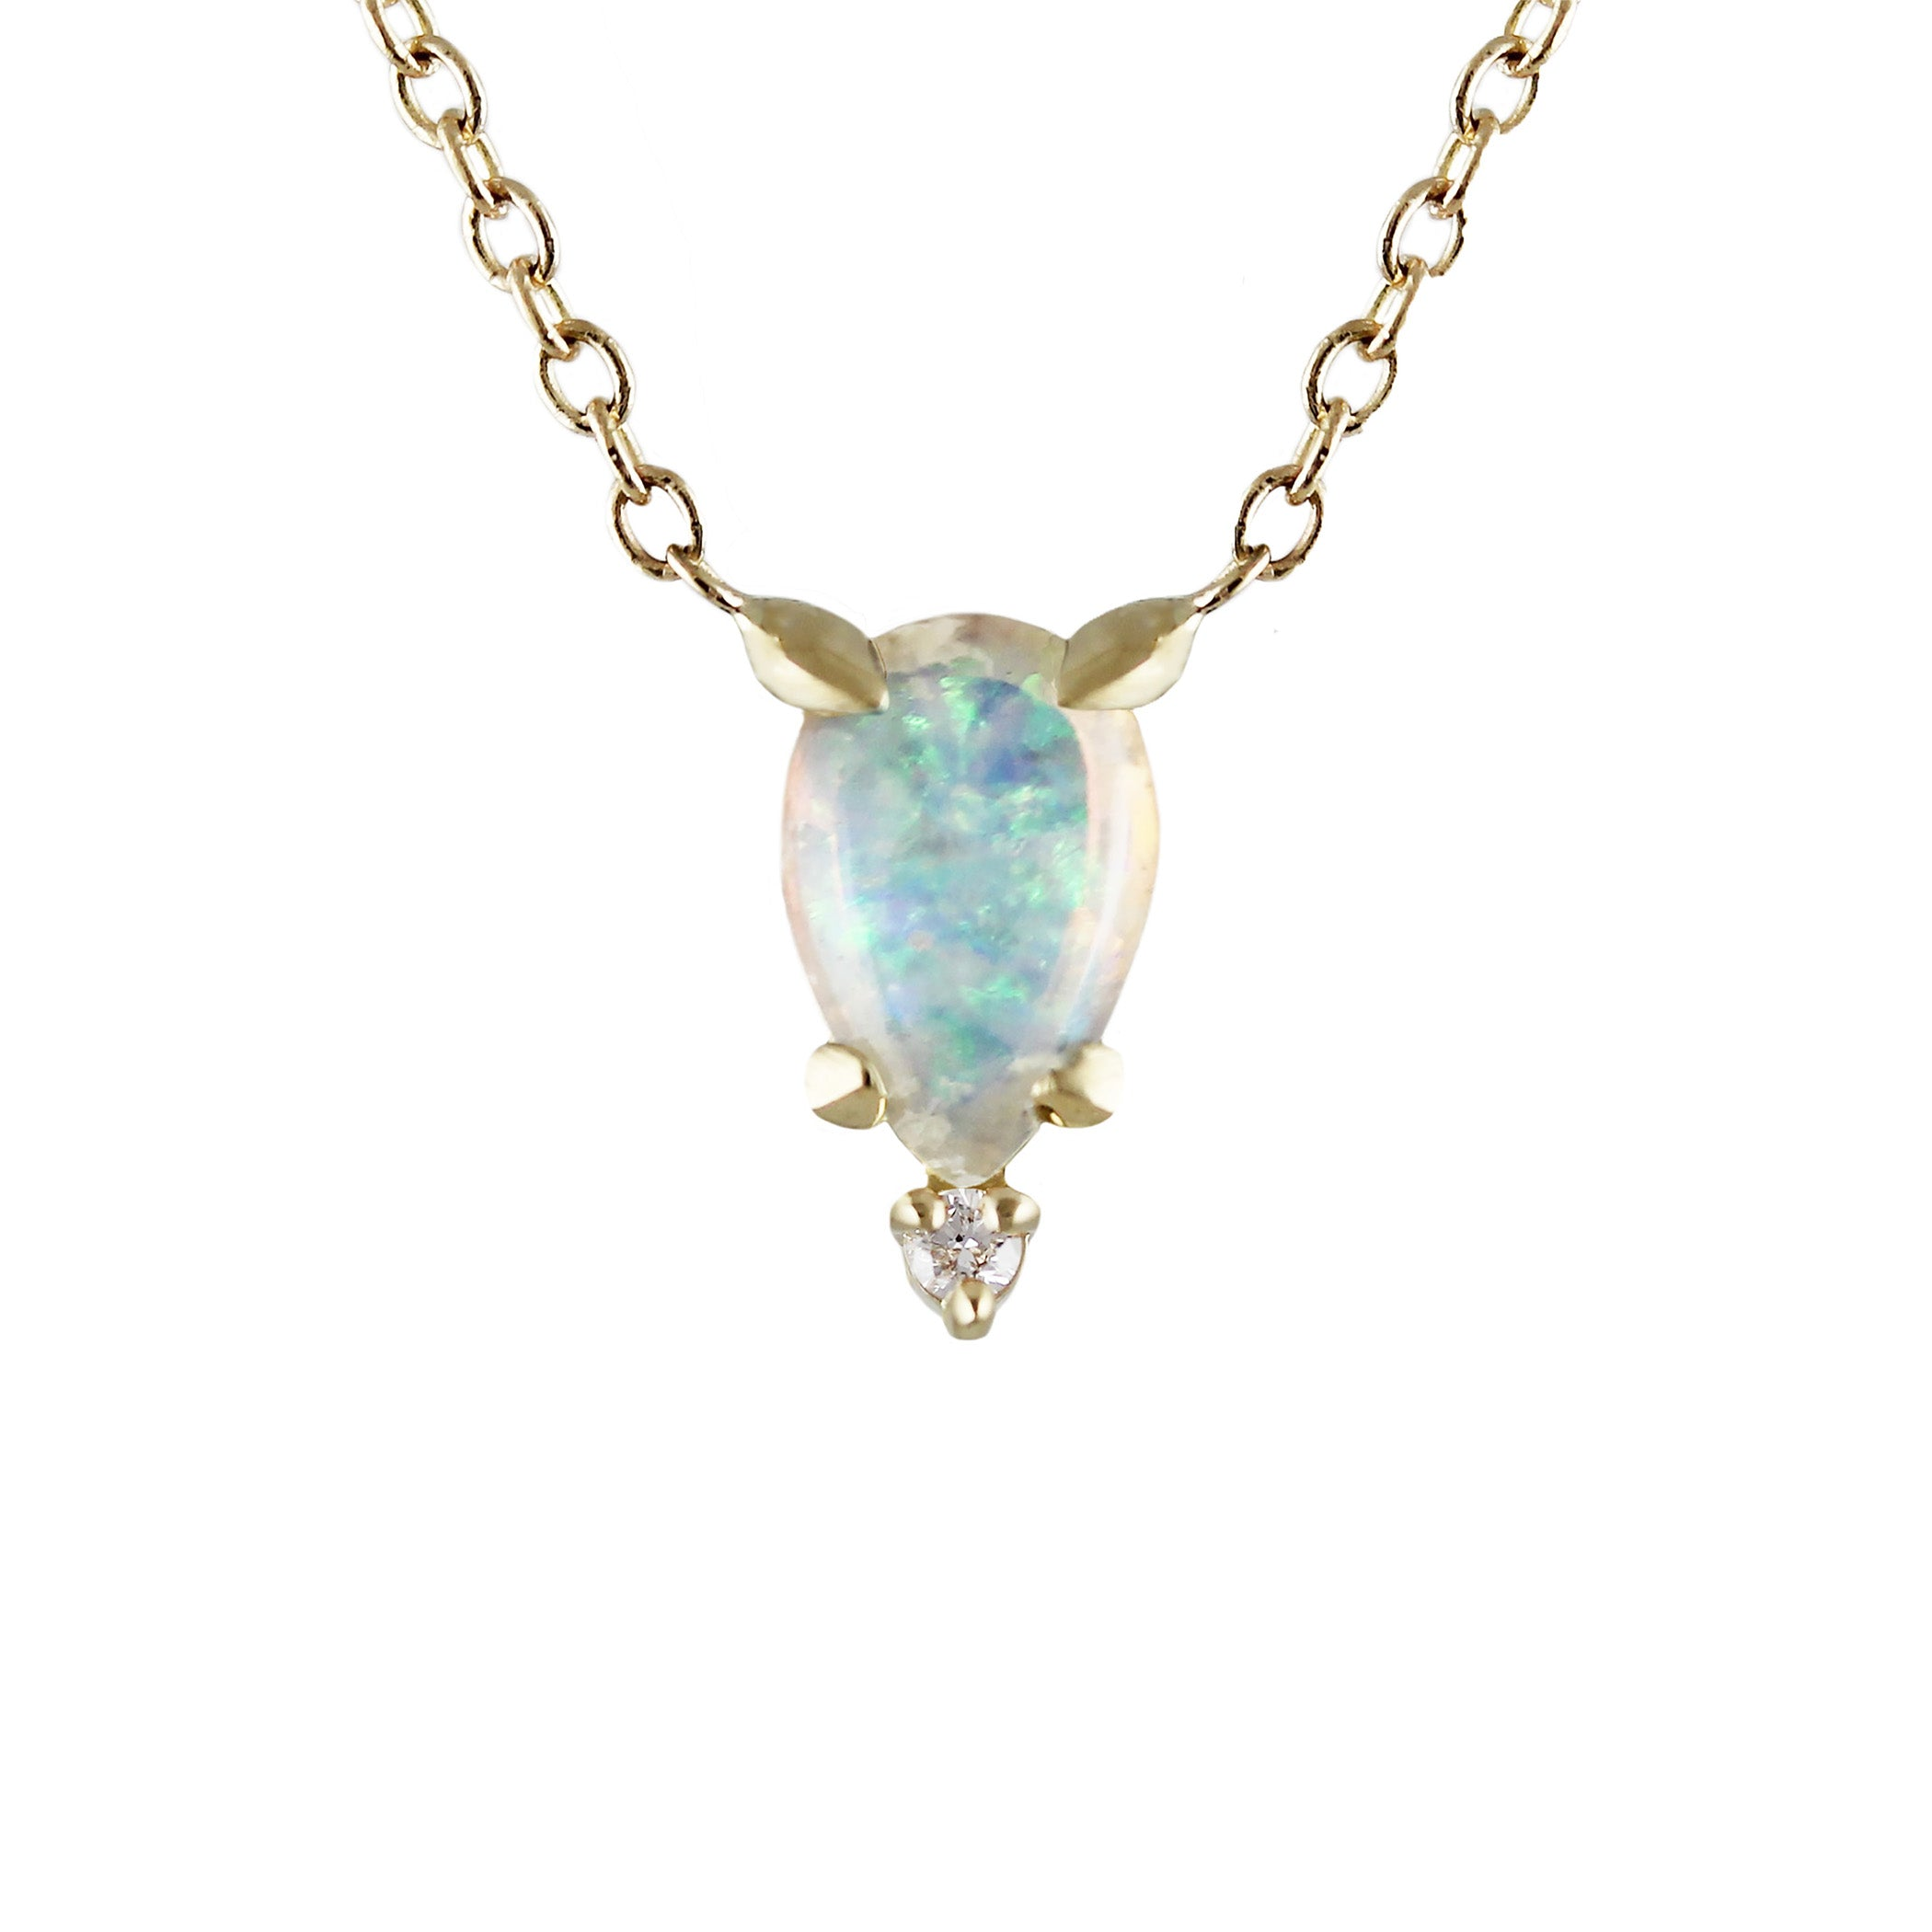 necklace white opal crystal pendant catherine lv popesco medallion